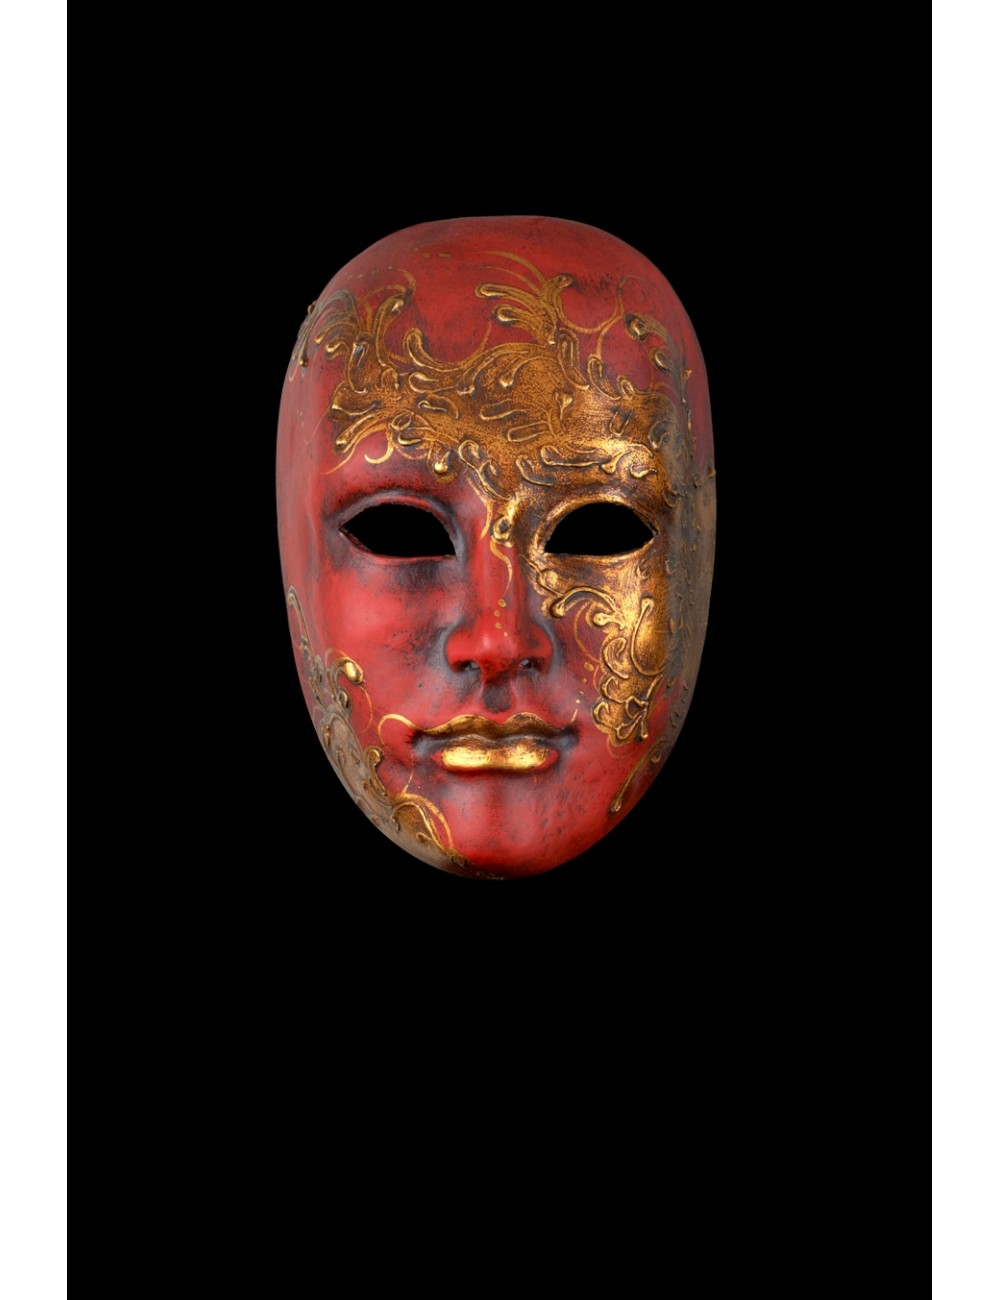 https://originalveniceshop.com/2054-thickbox_default/red-face-with-gold.jpg